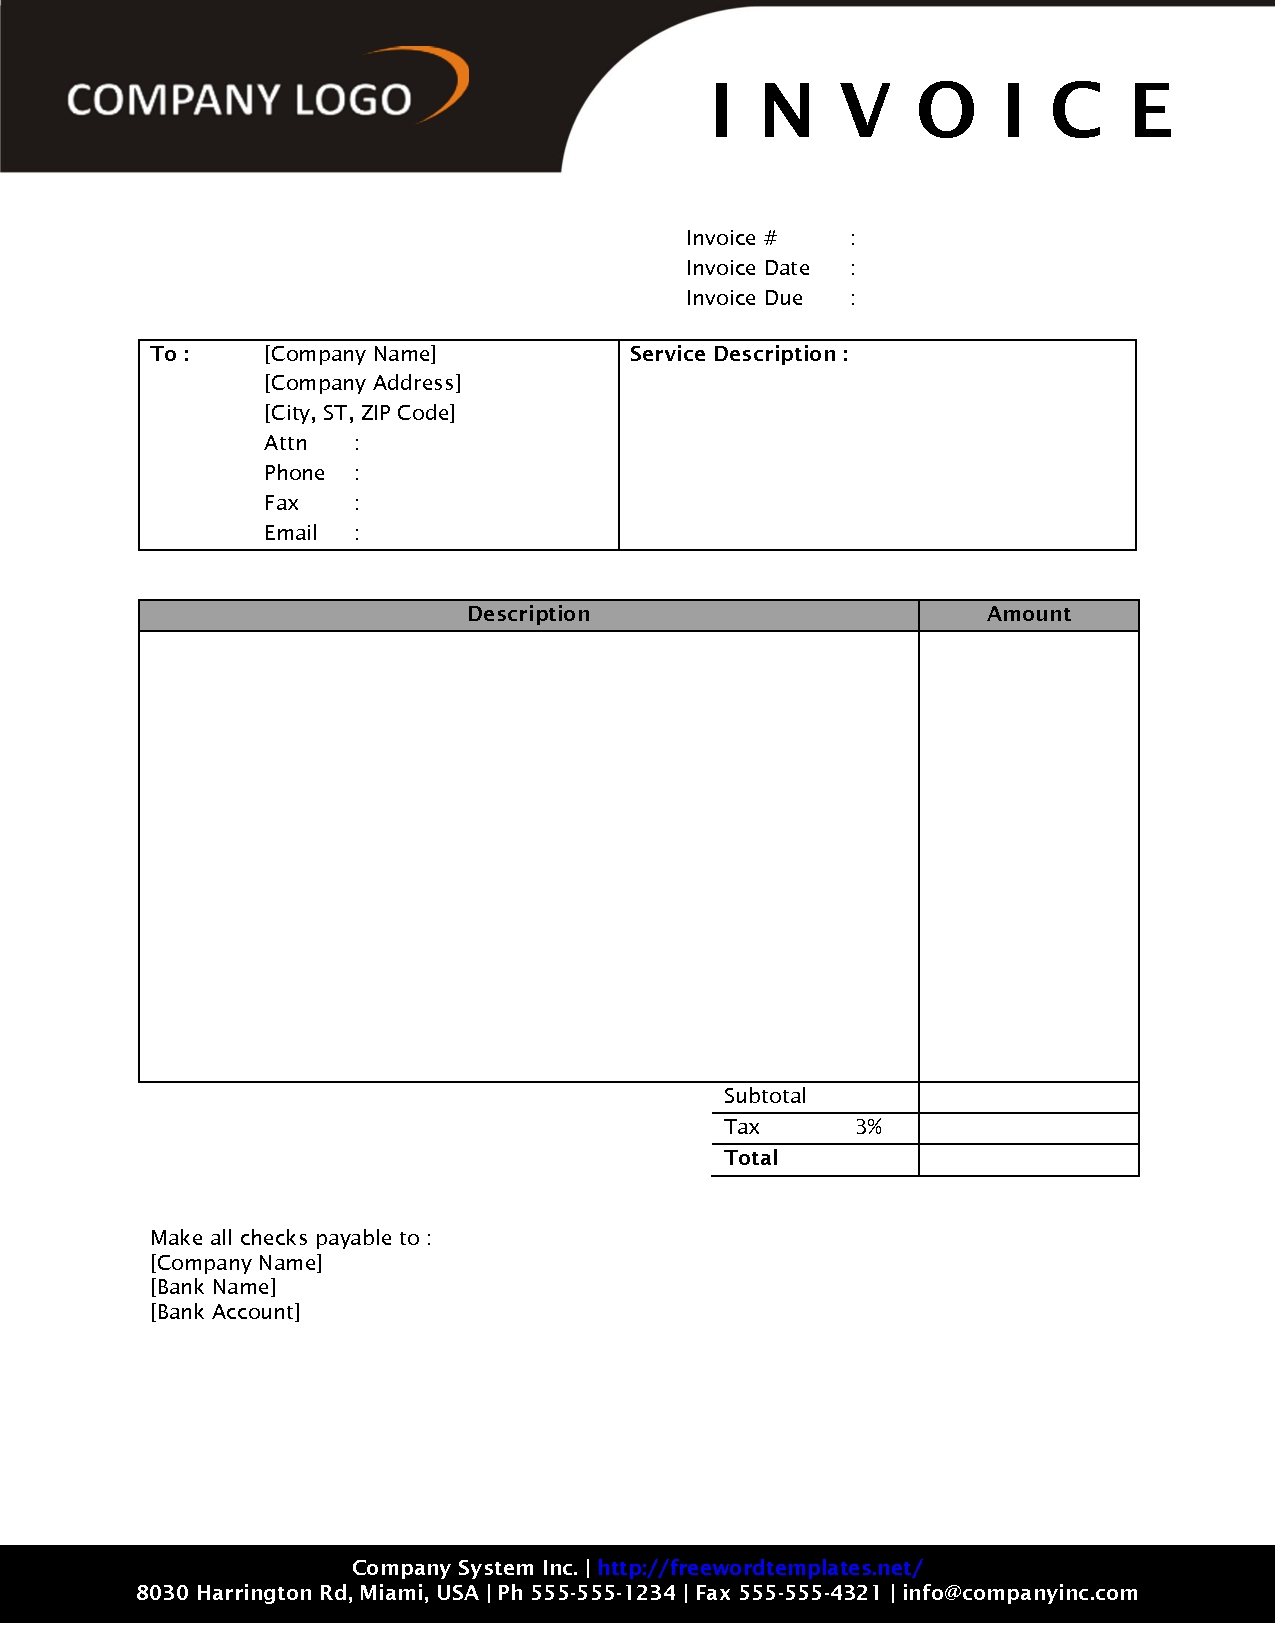 basic invoice template microsoft word incident report form basic invoice template microsoft word